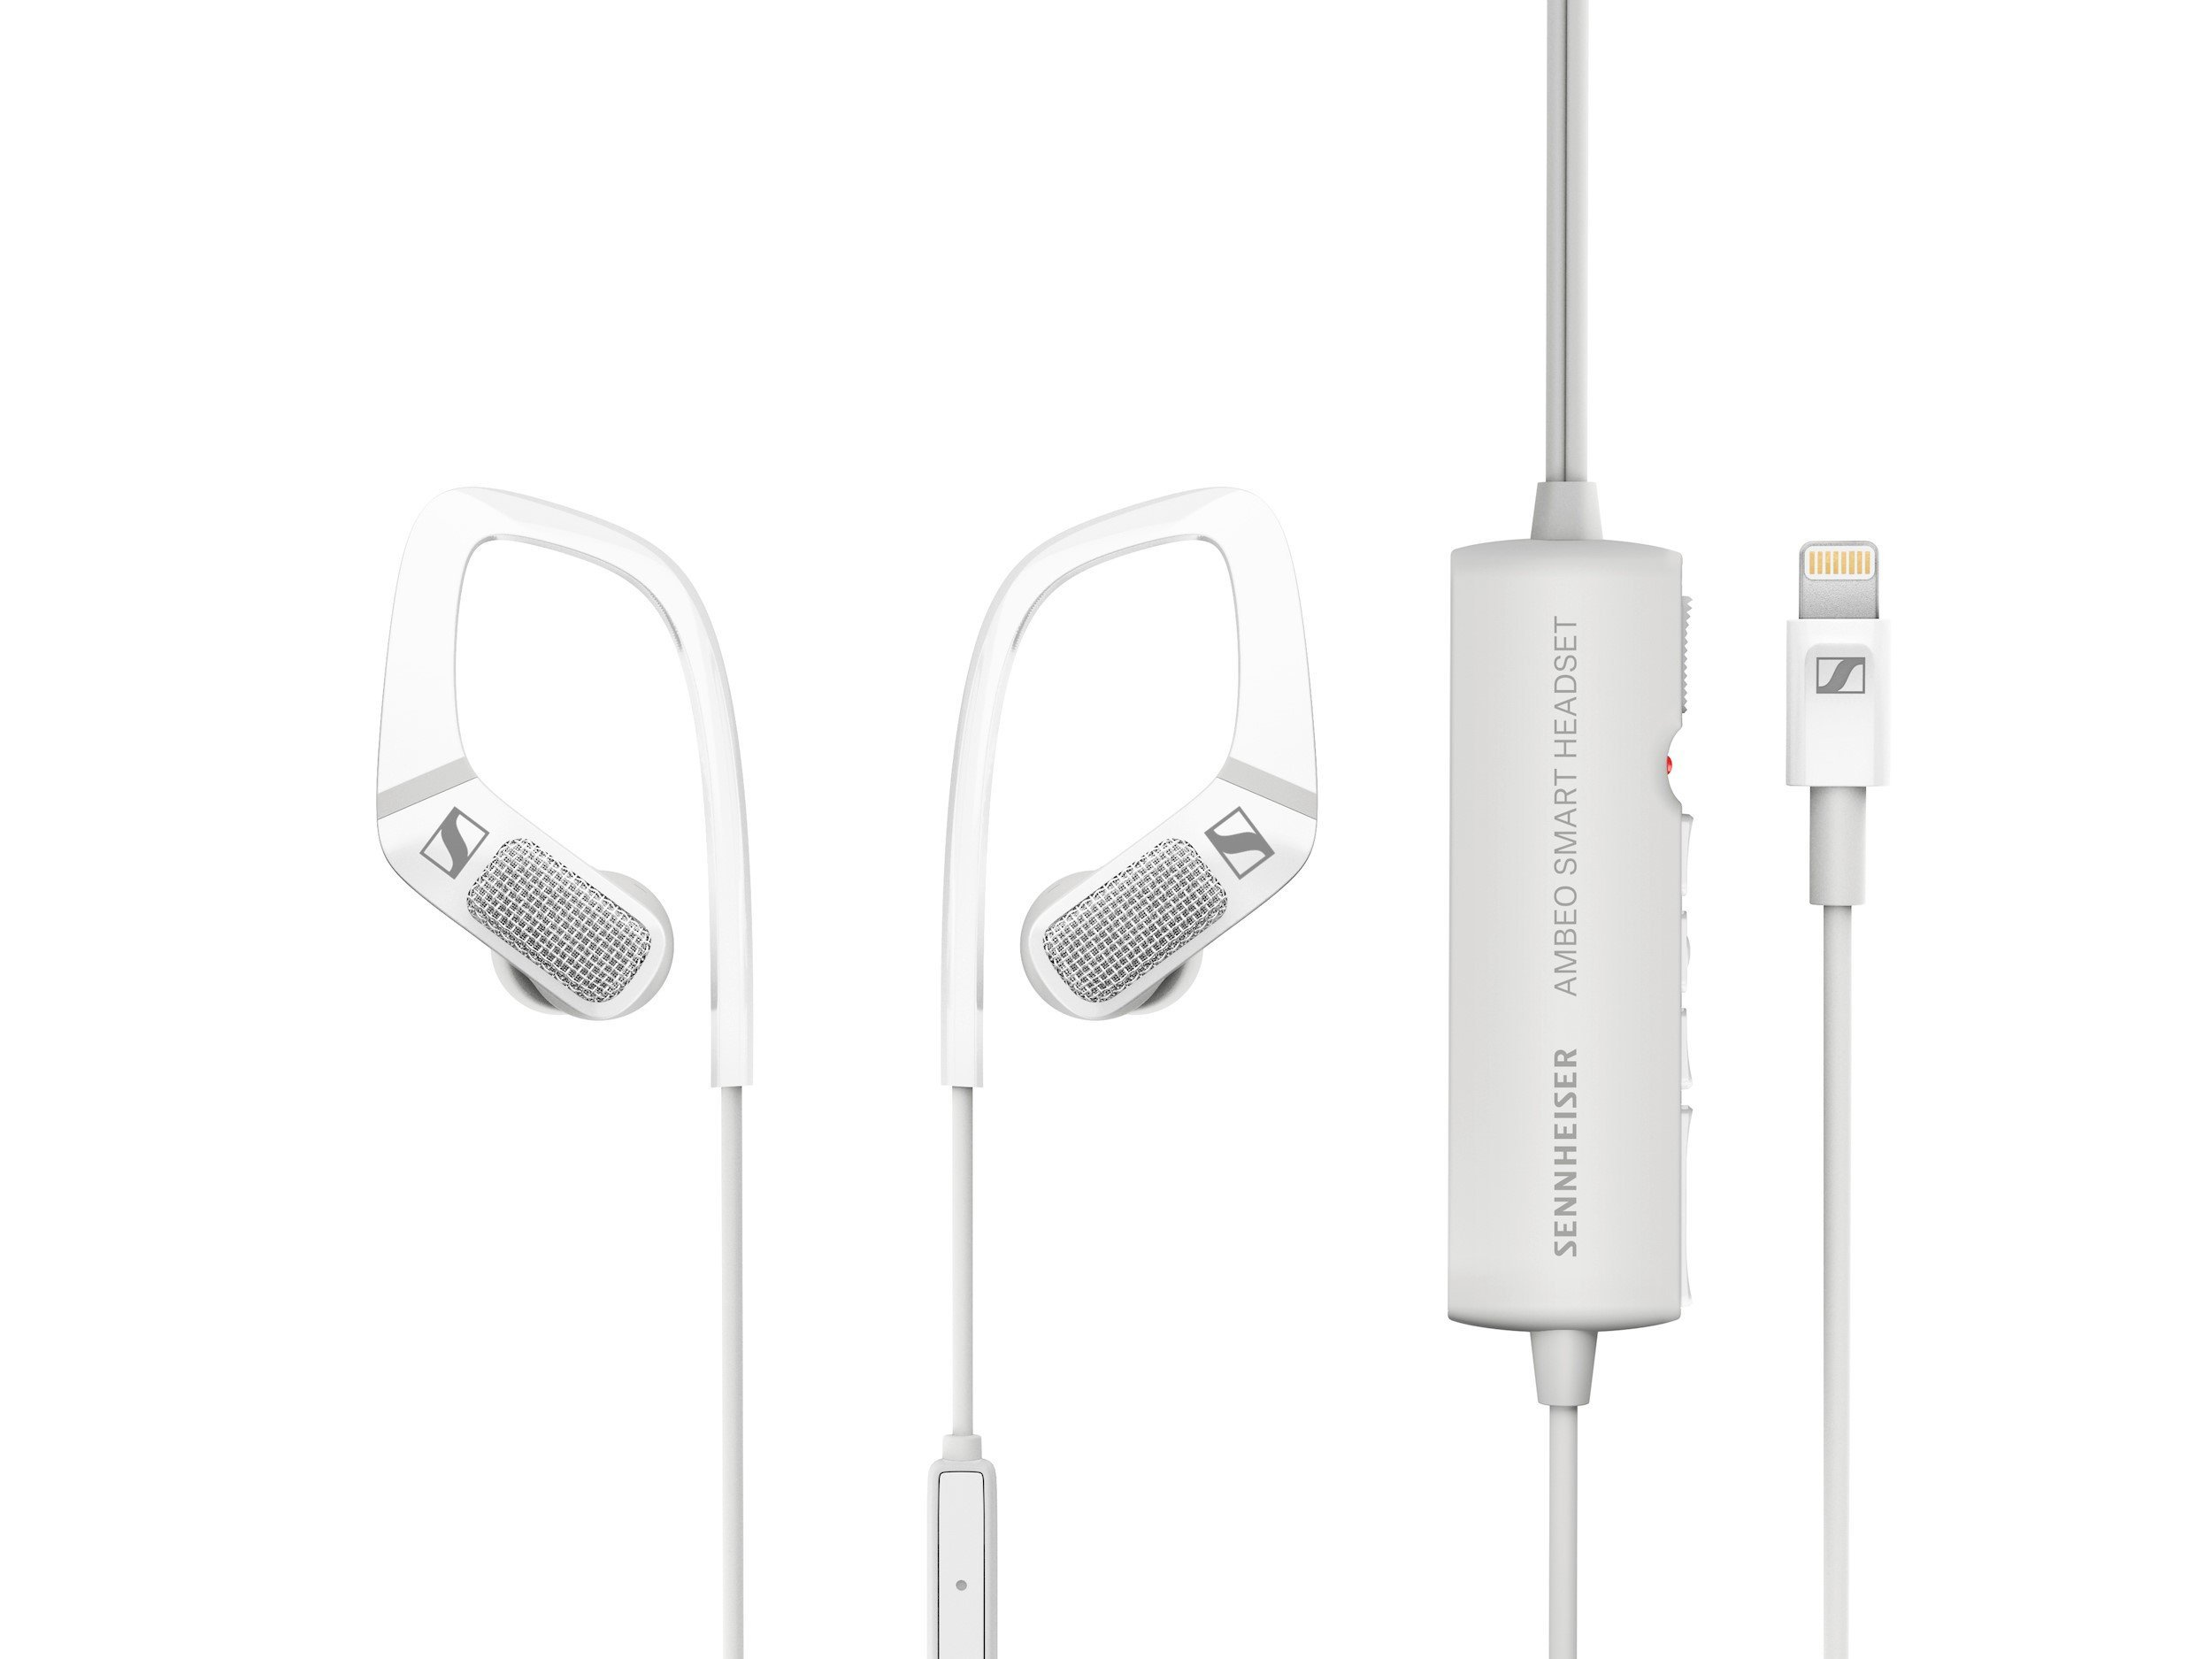 Sennheiser AMBEO Smart Headset Binaural Recording Ear Canal Headphones by Sennheiser